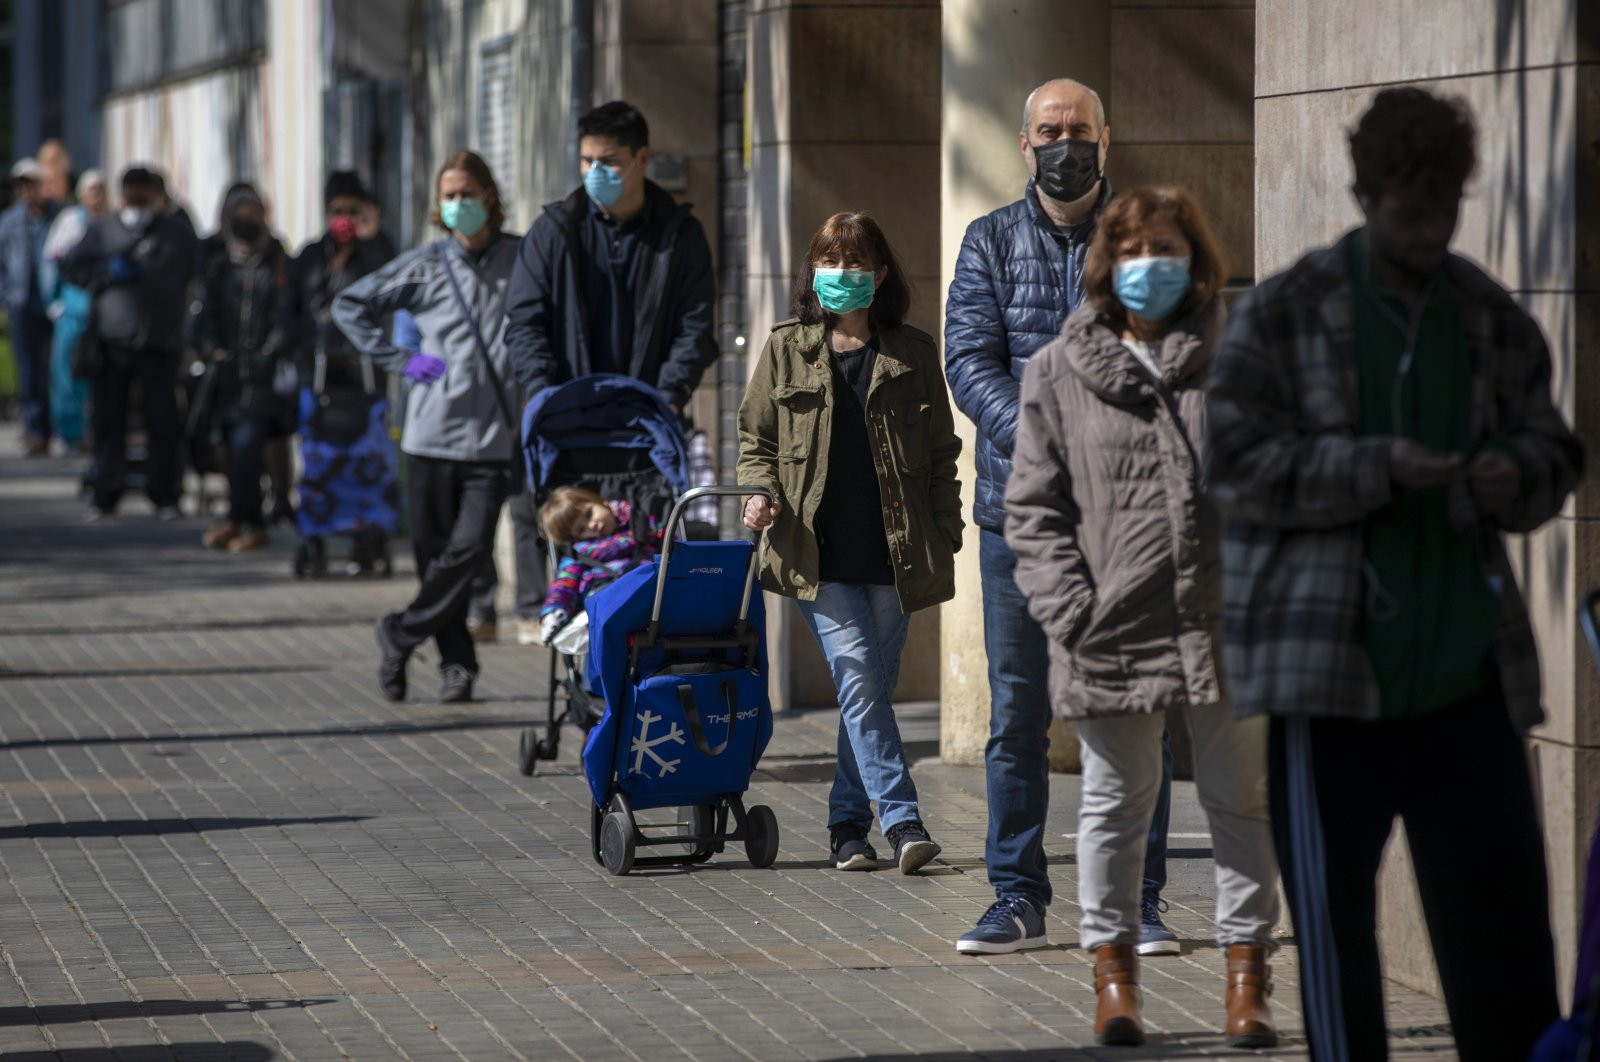 People wearing face masks line up to buy supplies from a shop during the coronavirus outbreak in Barcelona, Spain, Saturday, April 4, 2020. (AP Photo)